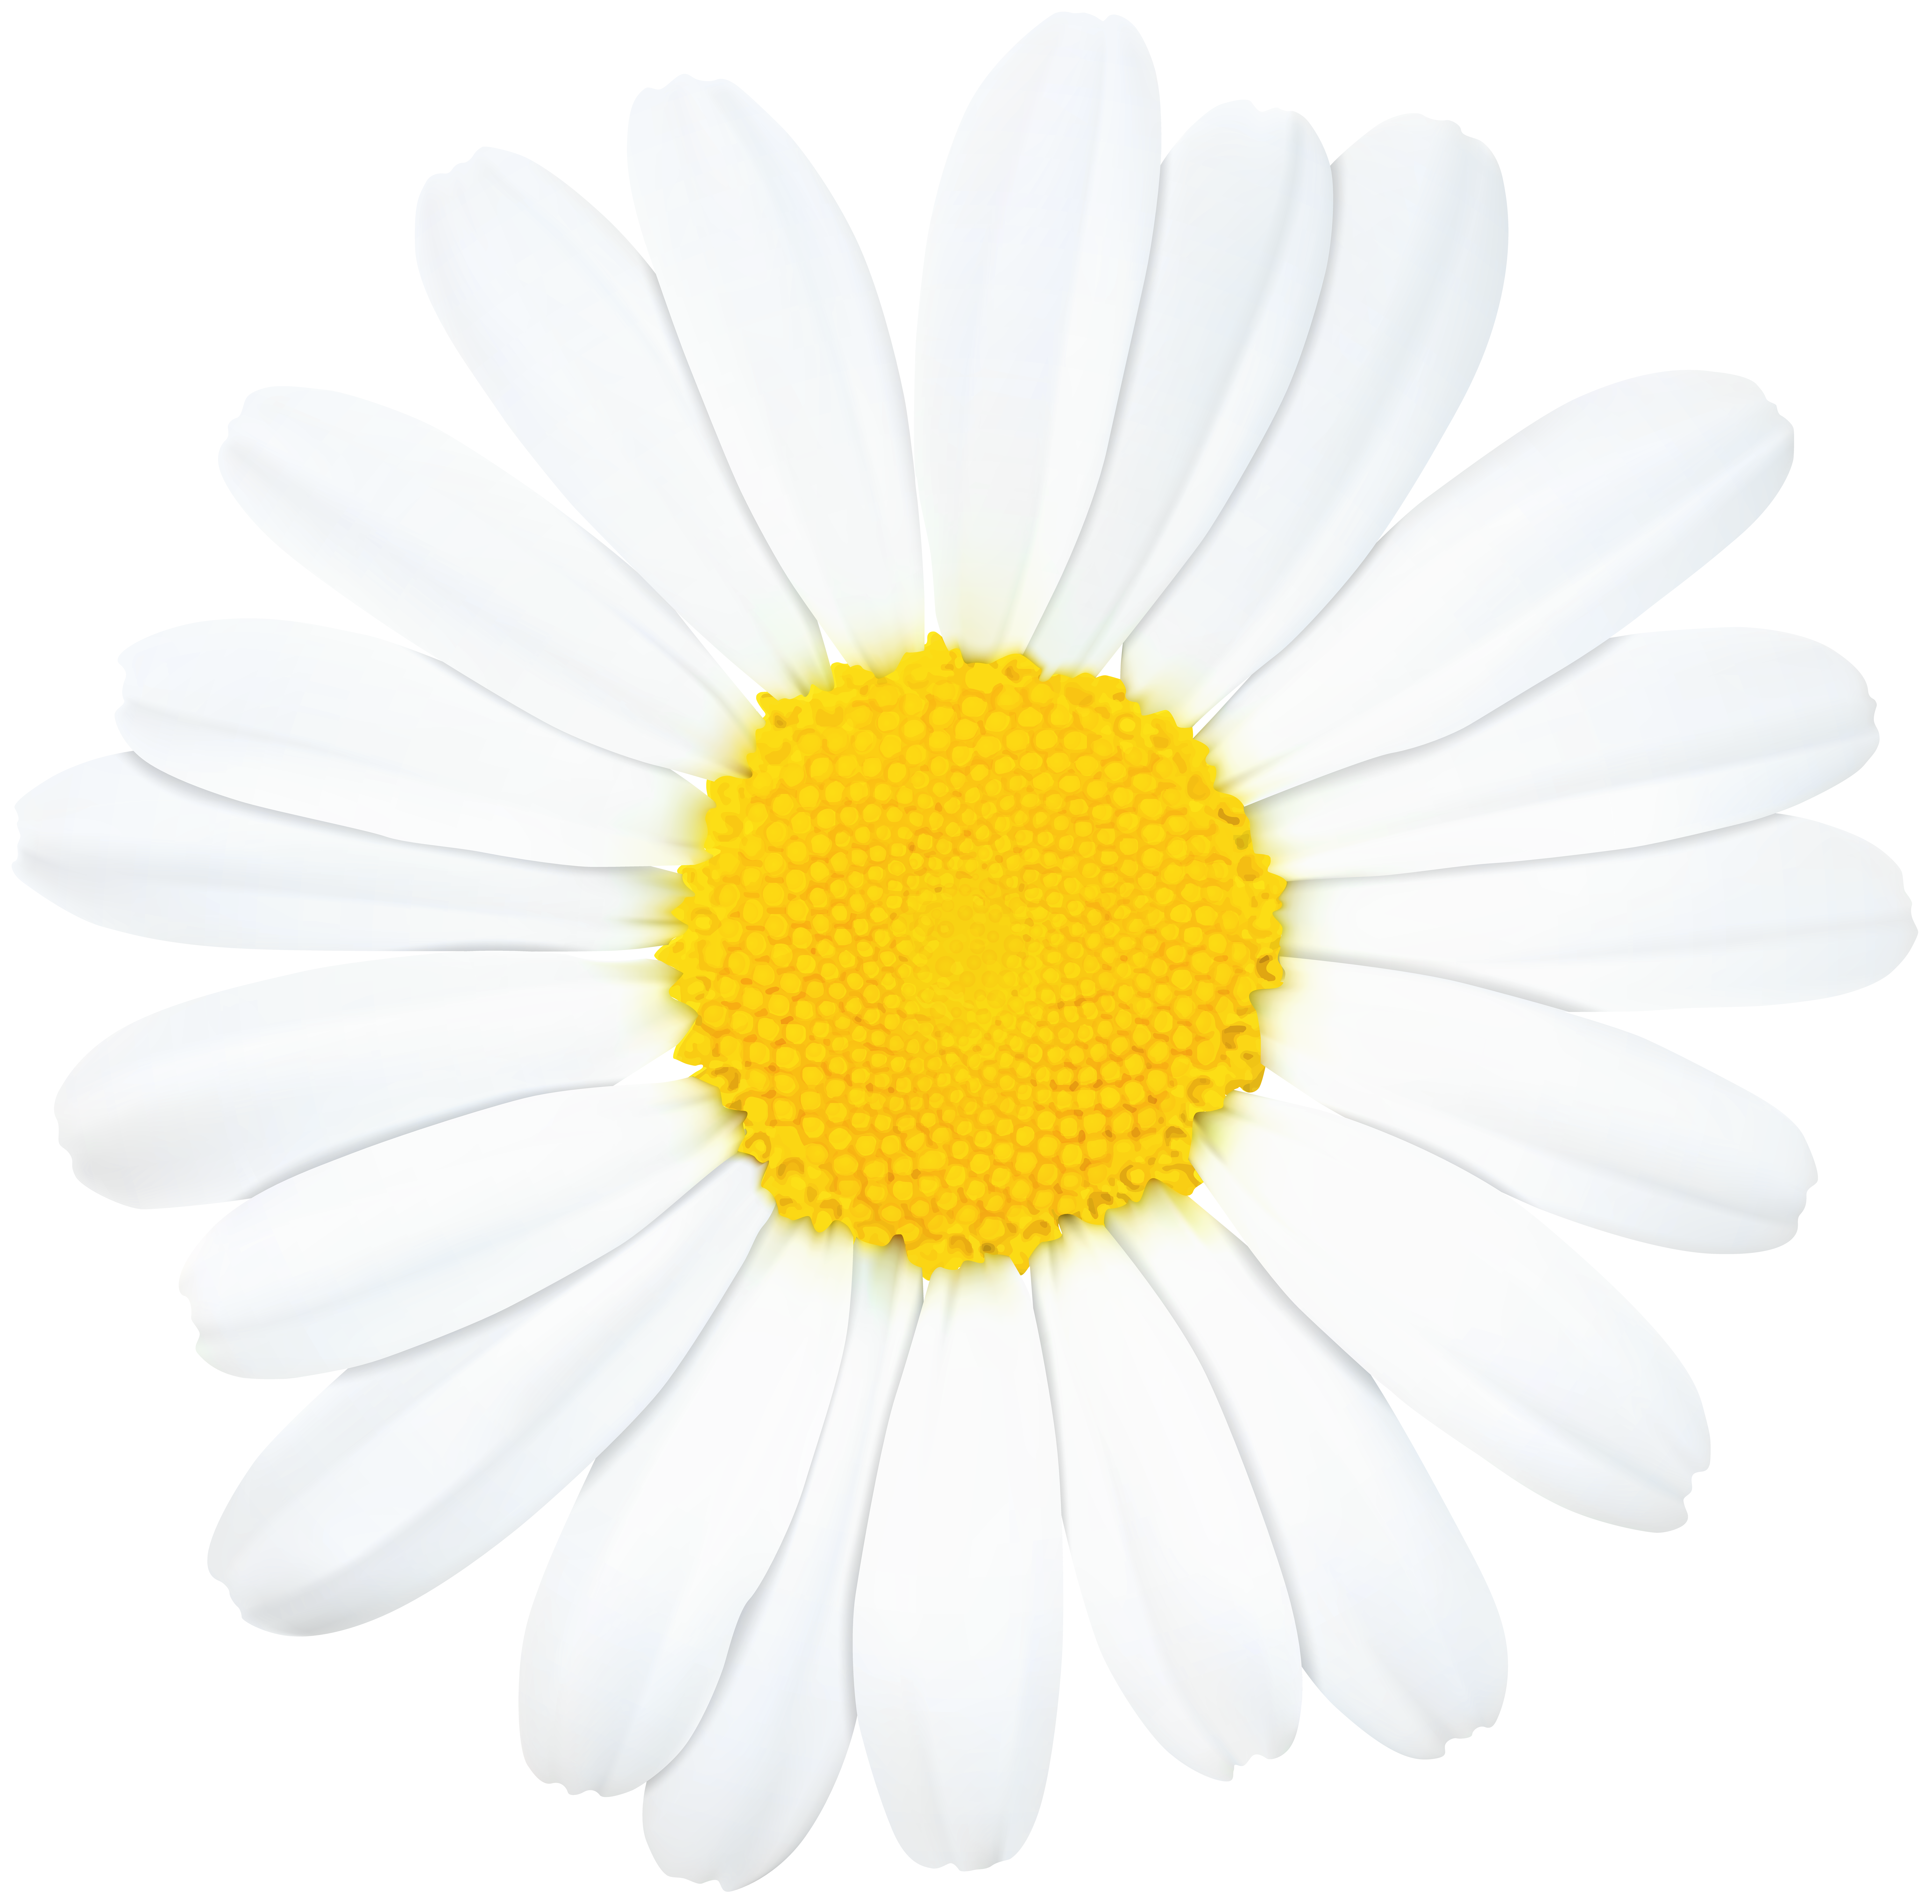 Daisy flower png. Clip art image gallery